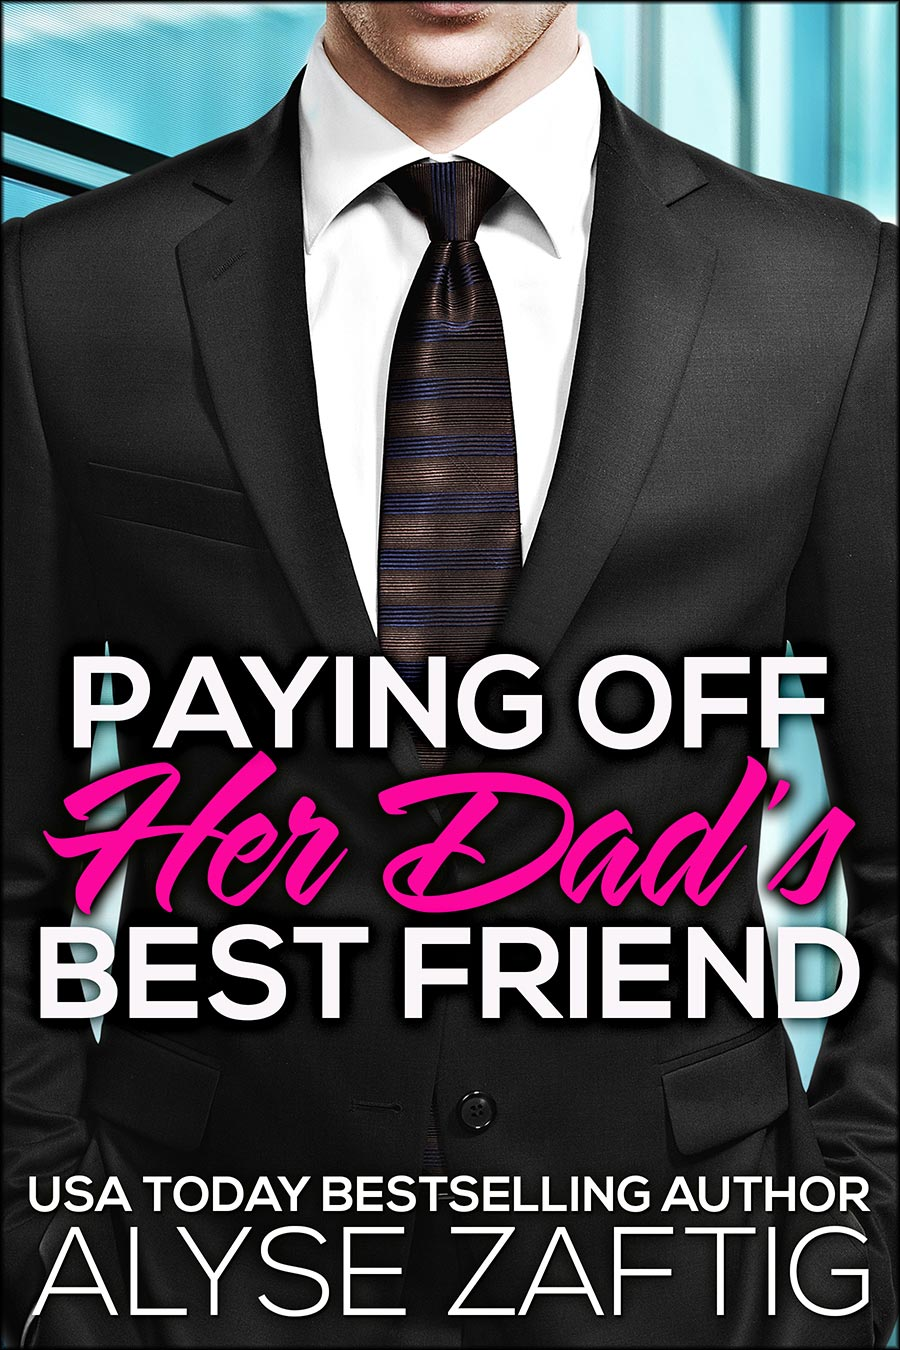 Paying-off-her-dad-best-friend---alyse-zaftig---centered-on-blue.jpg